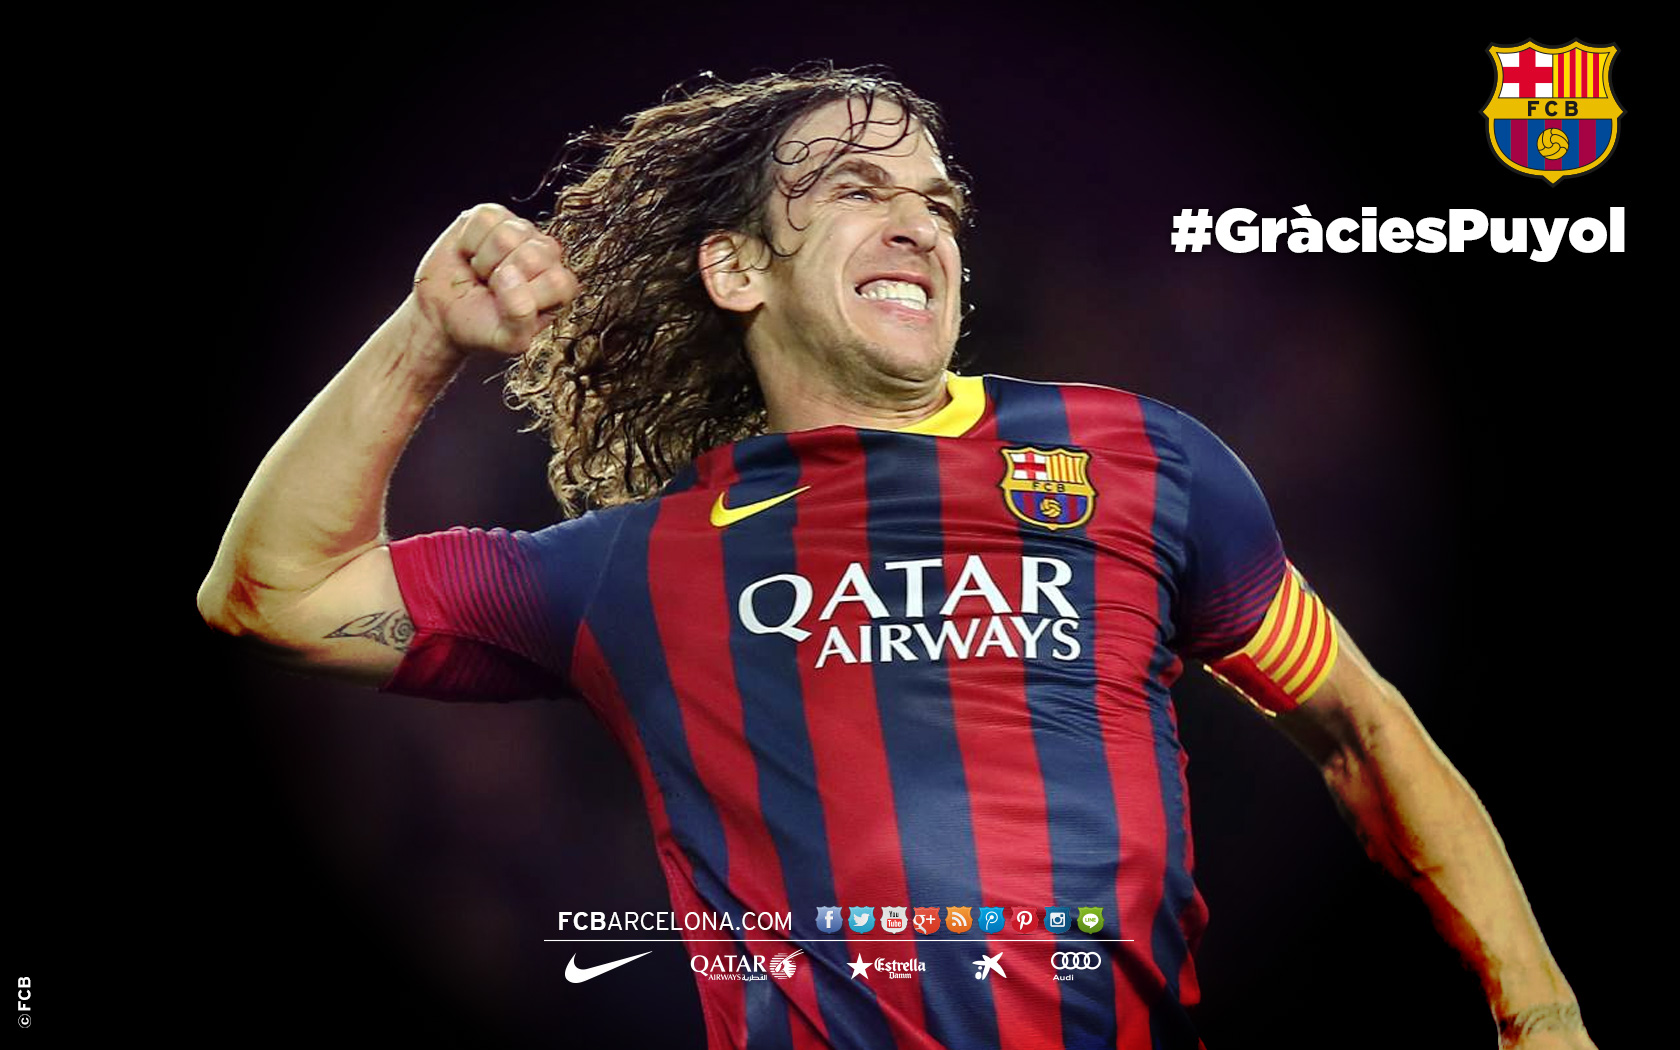 Five Carles Puyol wallpapers for your puter FC Barcelona